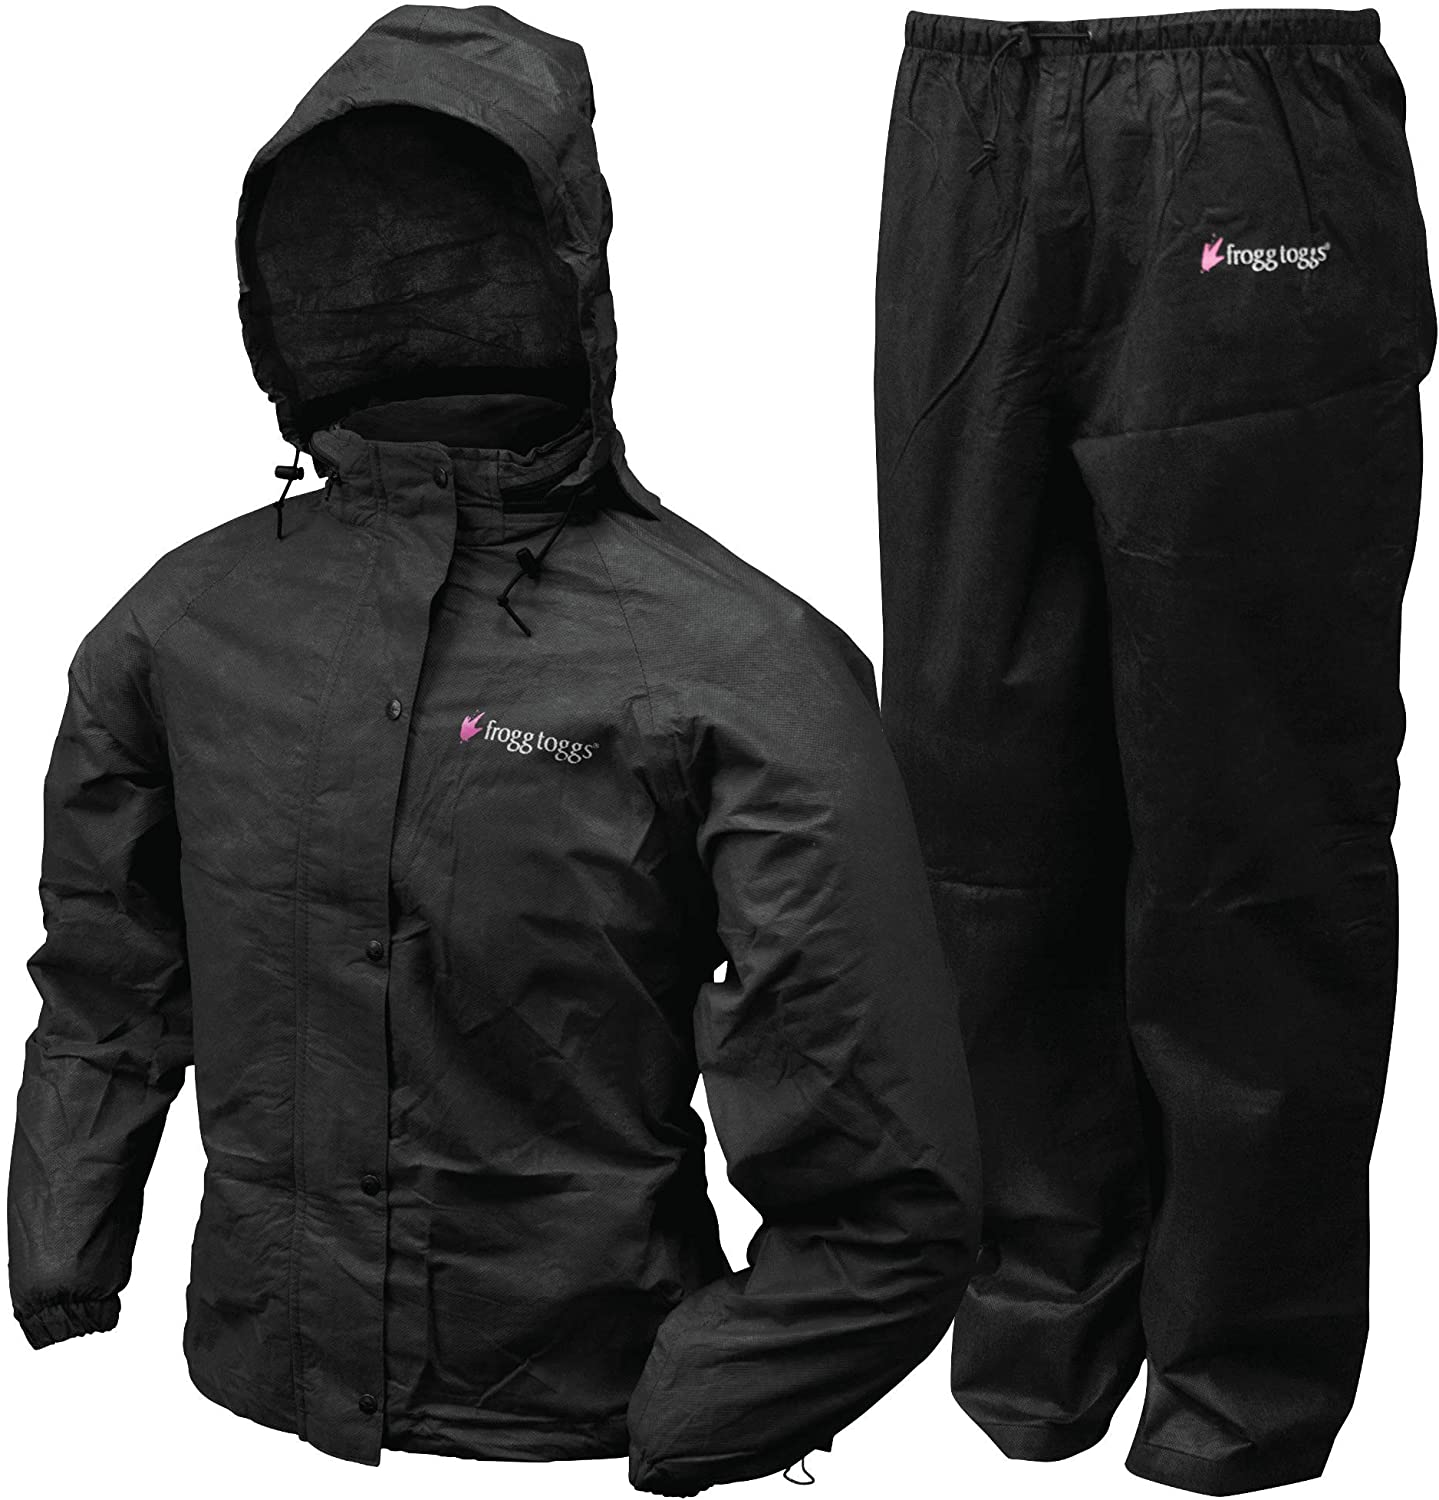 FROGG TOGGS Women's Classic All-Purpose Waterproof Breathable Rain Suit